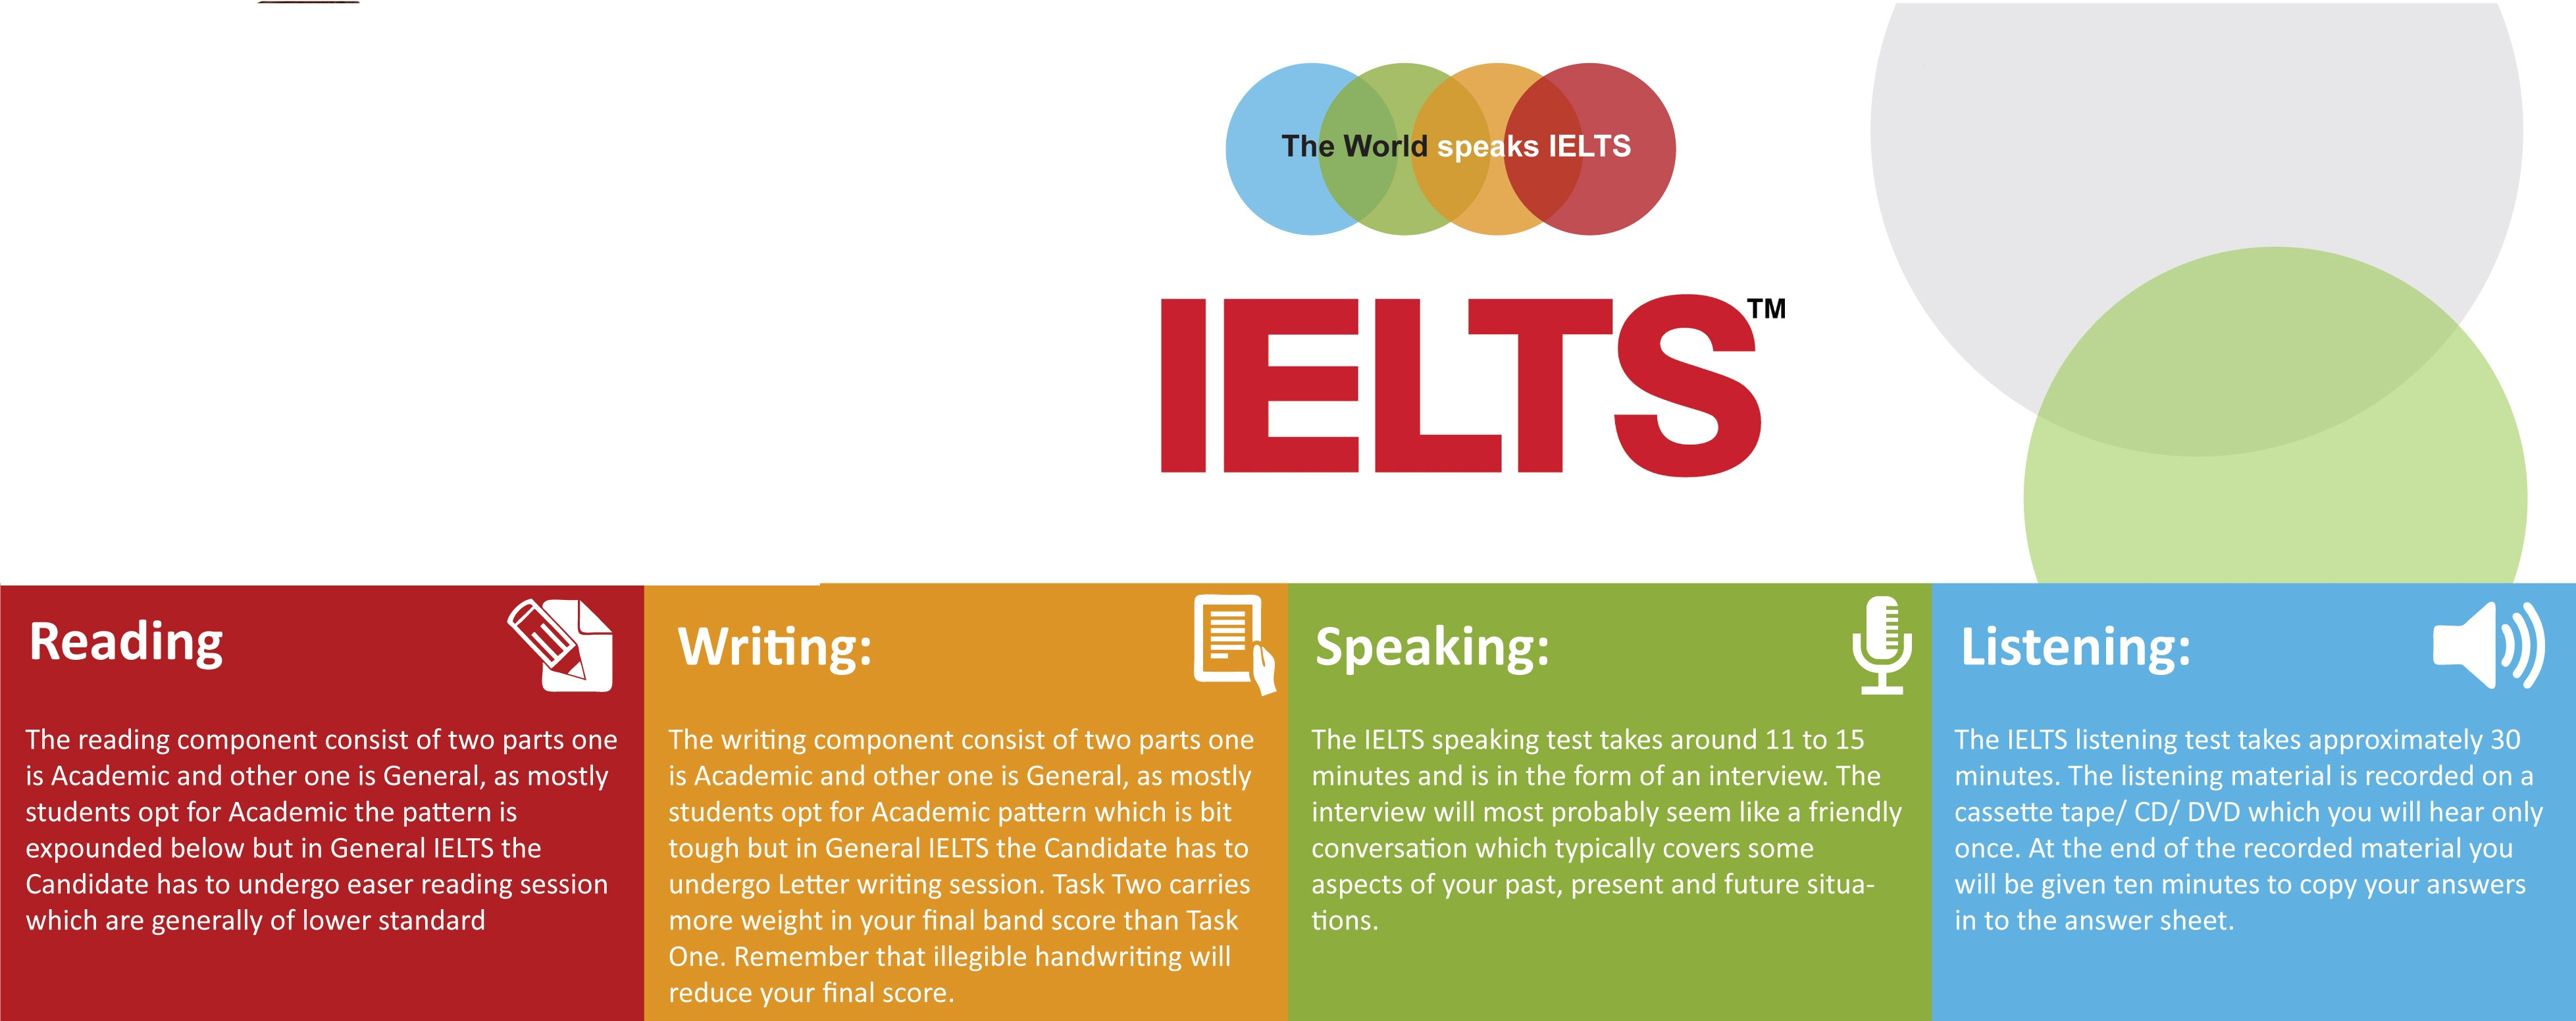 IELTS Training Coaching Center in Lahore Pakistan - IELTS